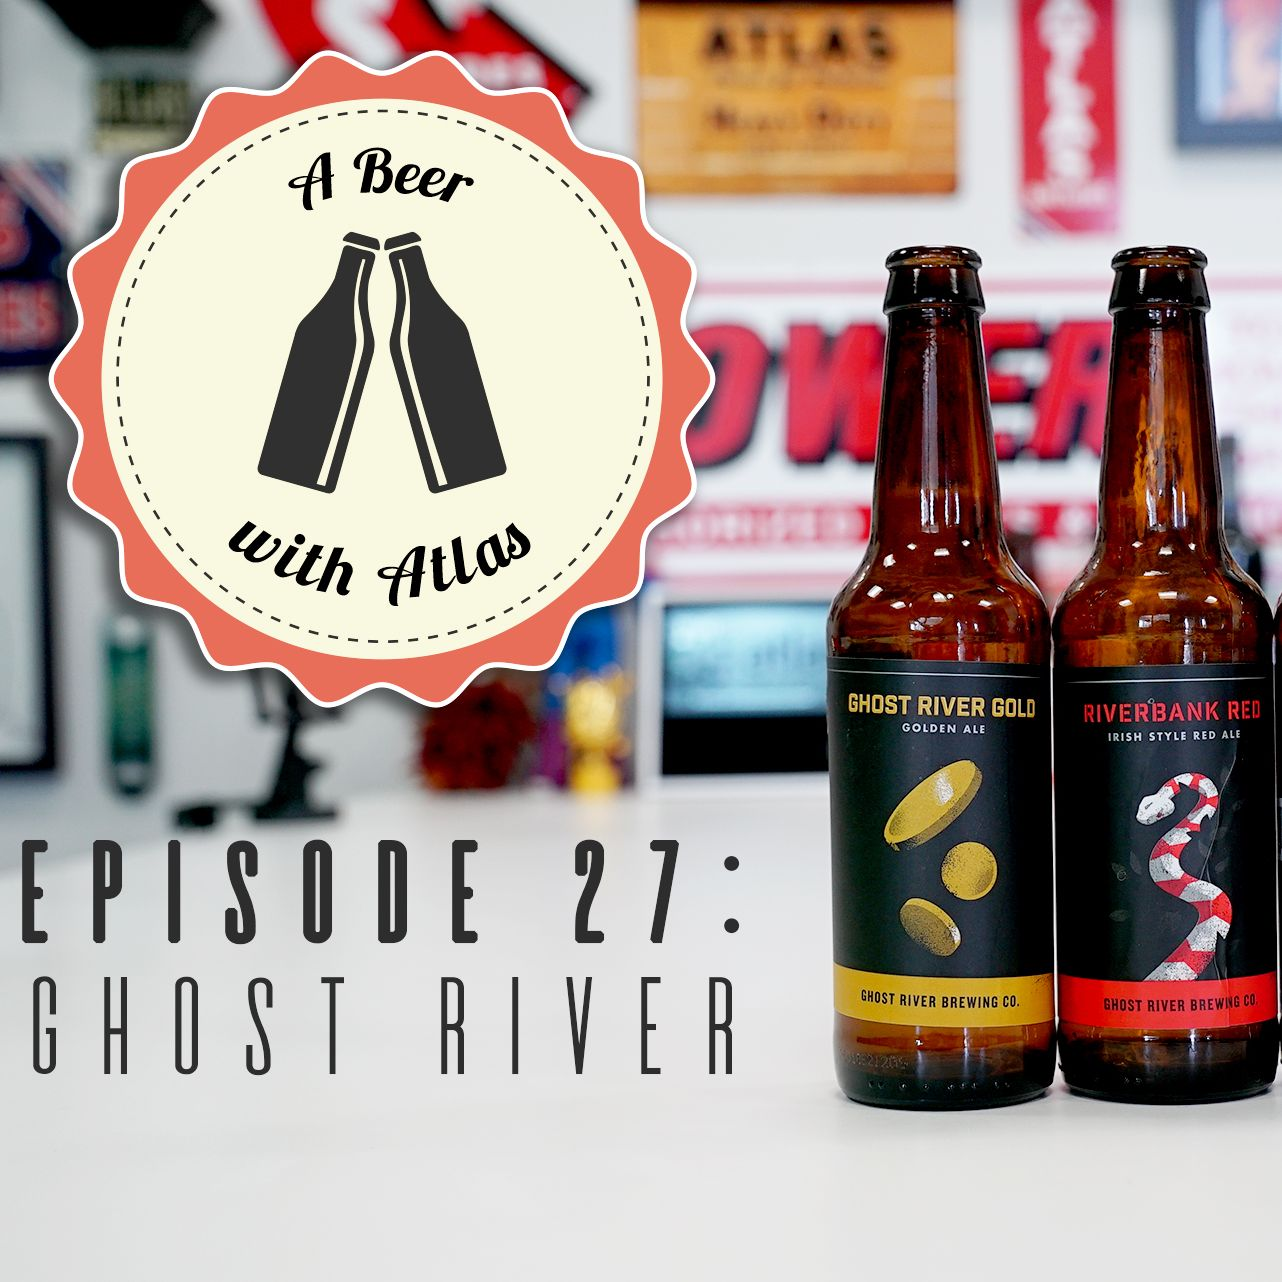 A Beer With Atlas #27 - Ghost River Brewing Co.